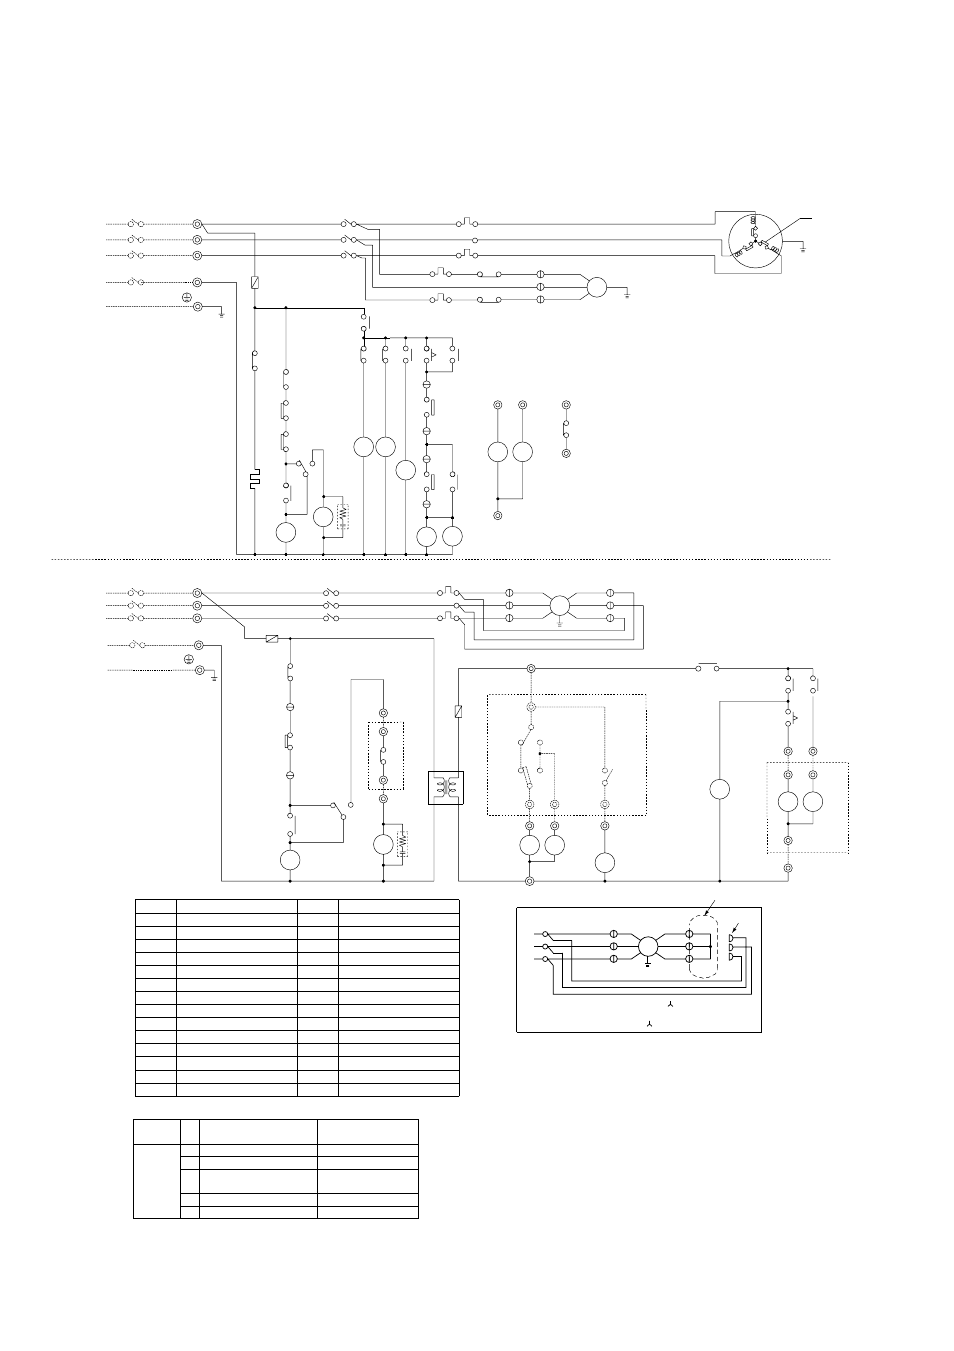 Protect For Cool Air Blow Mitsubishi Electric Pe 15myc User Manual Current Relay Compressor Page 65 115